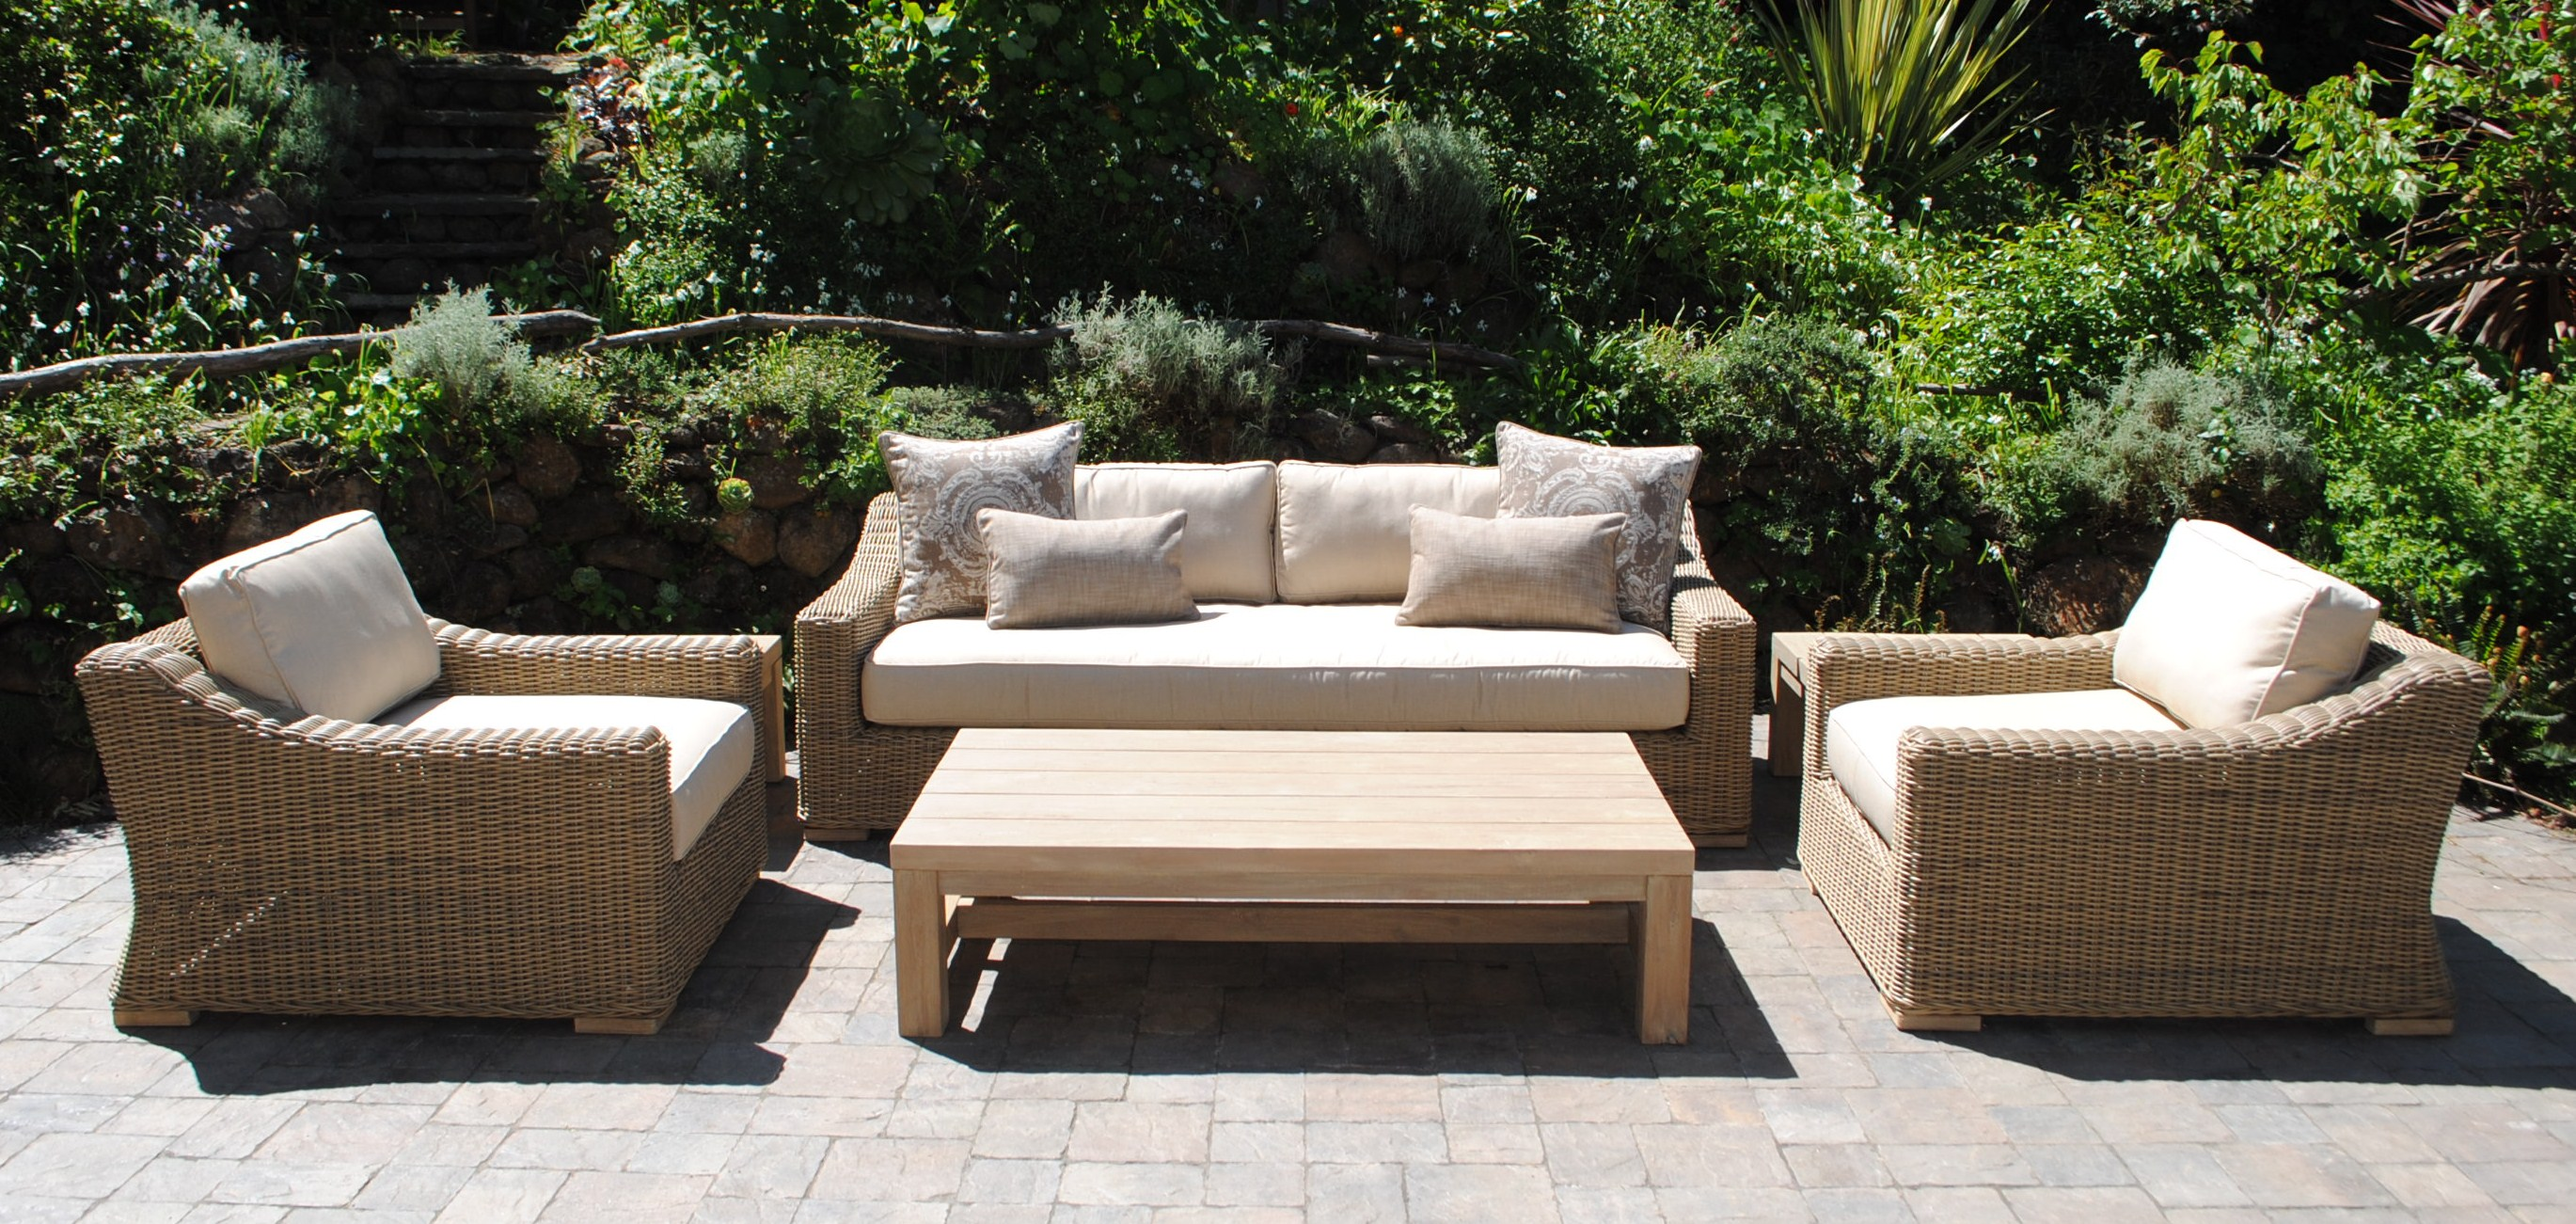 Image Result For Teak Outdoor Furniture